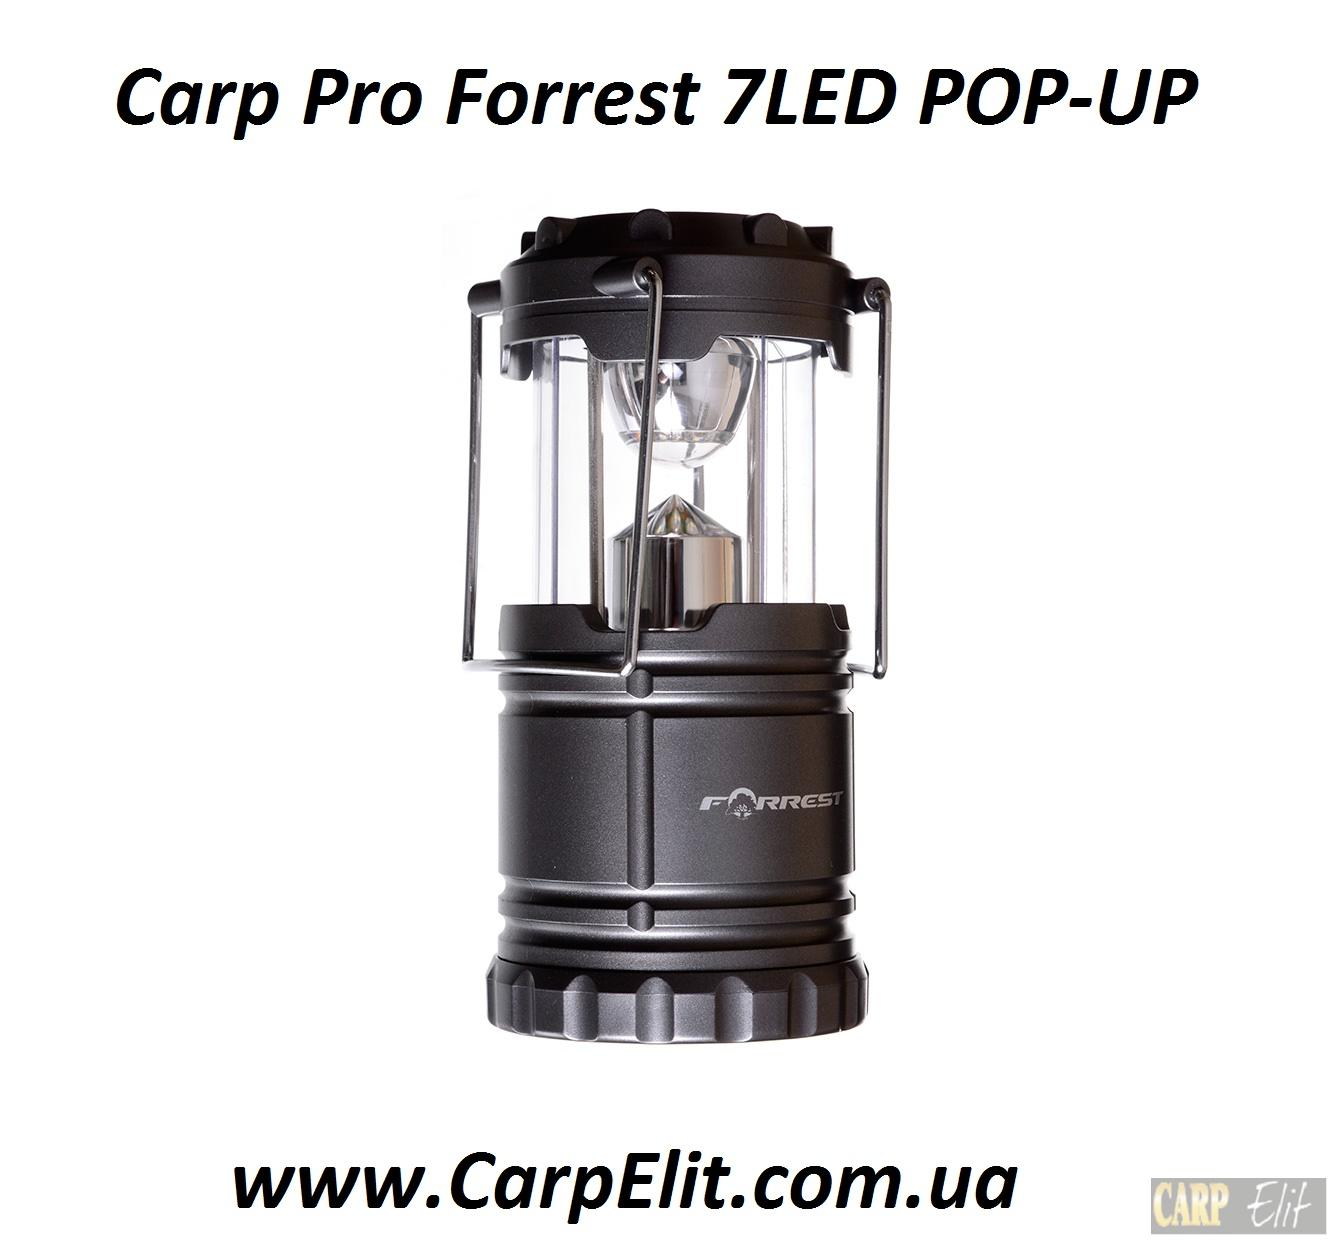 Forrest 7LED POP-UP